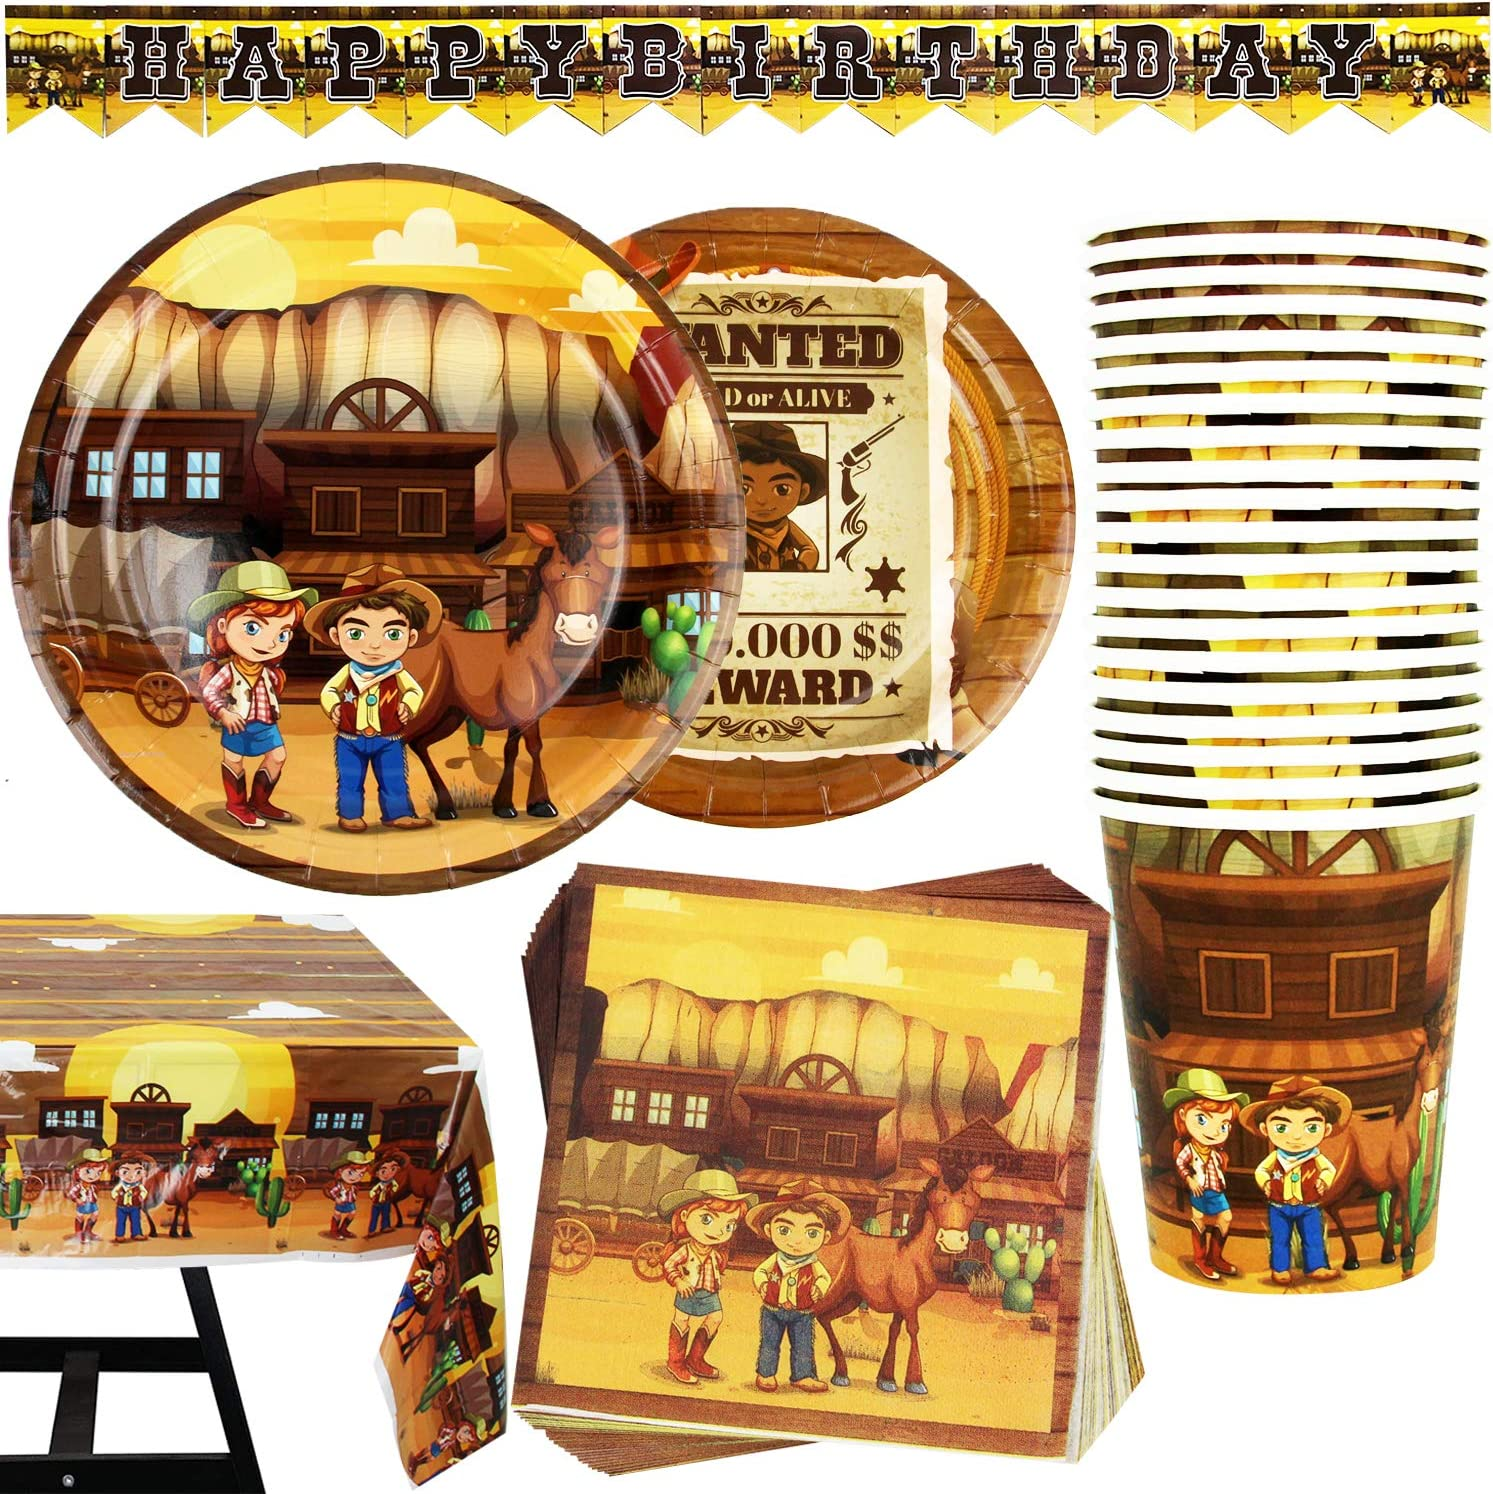 82 Popularity Piece Cowboy Wild West Safety and trust Party Set Including P Banner Supplies